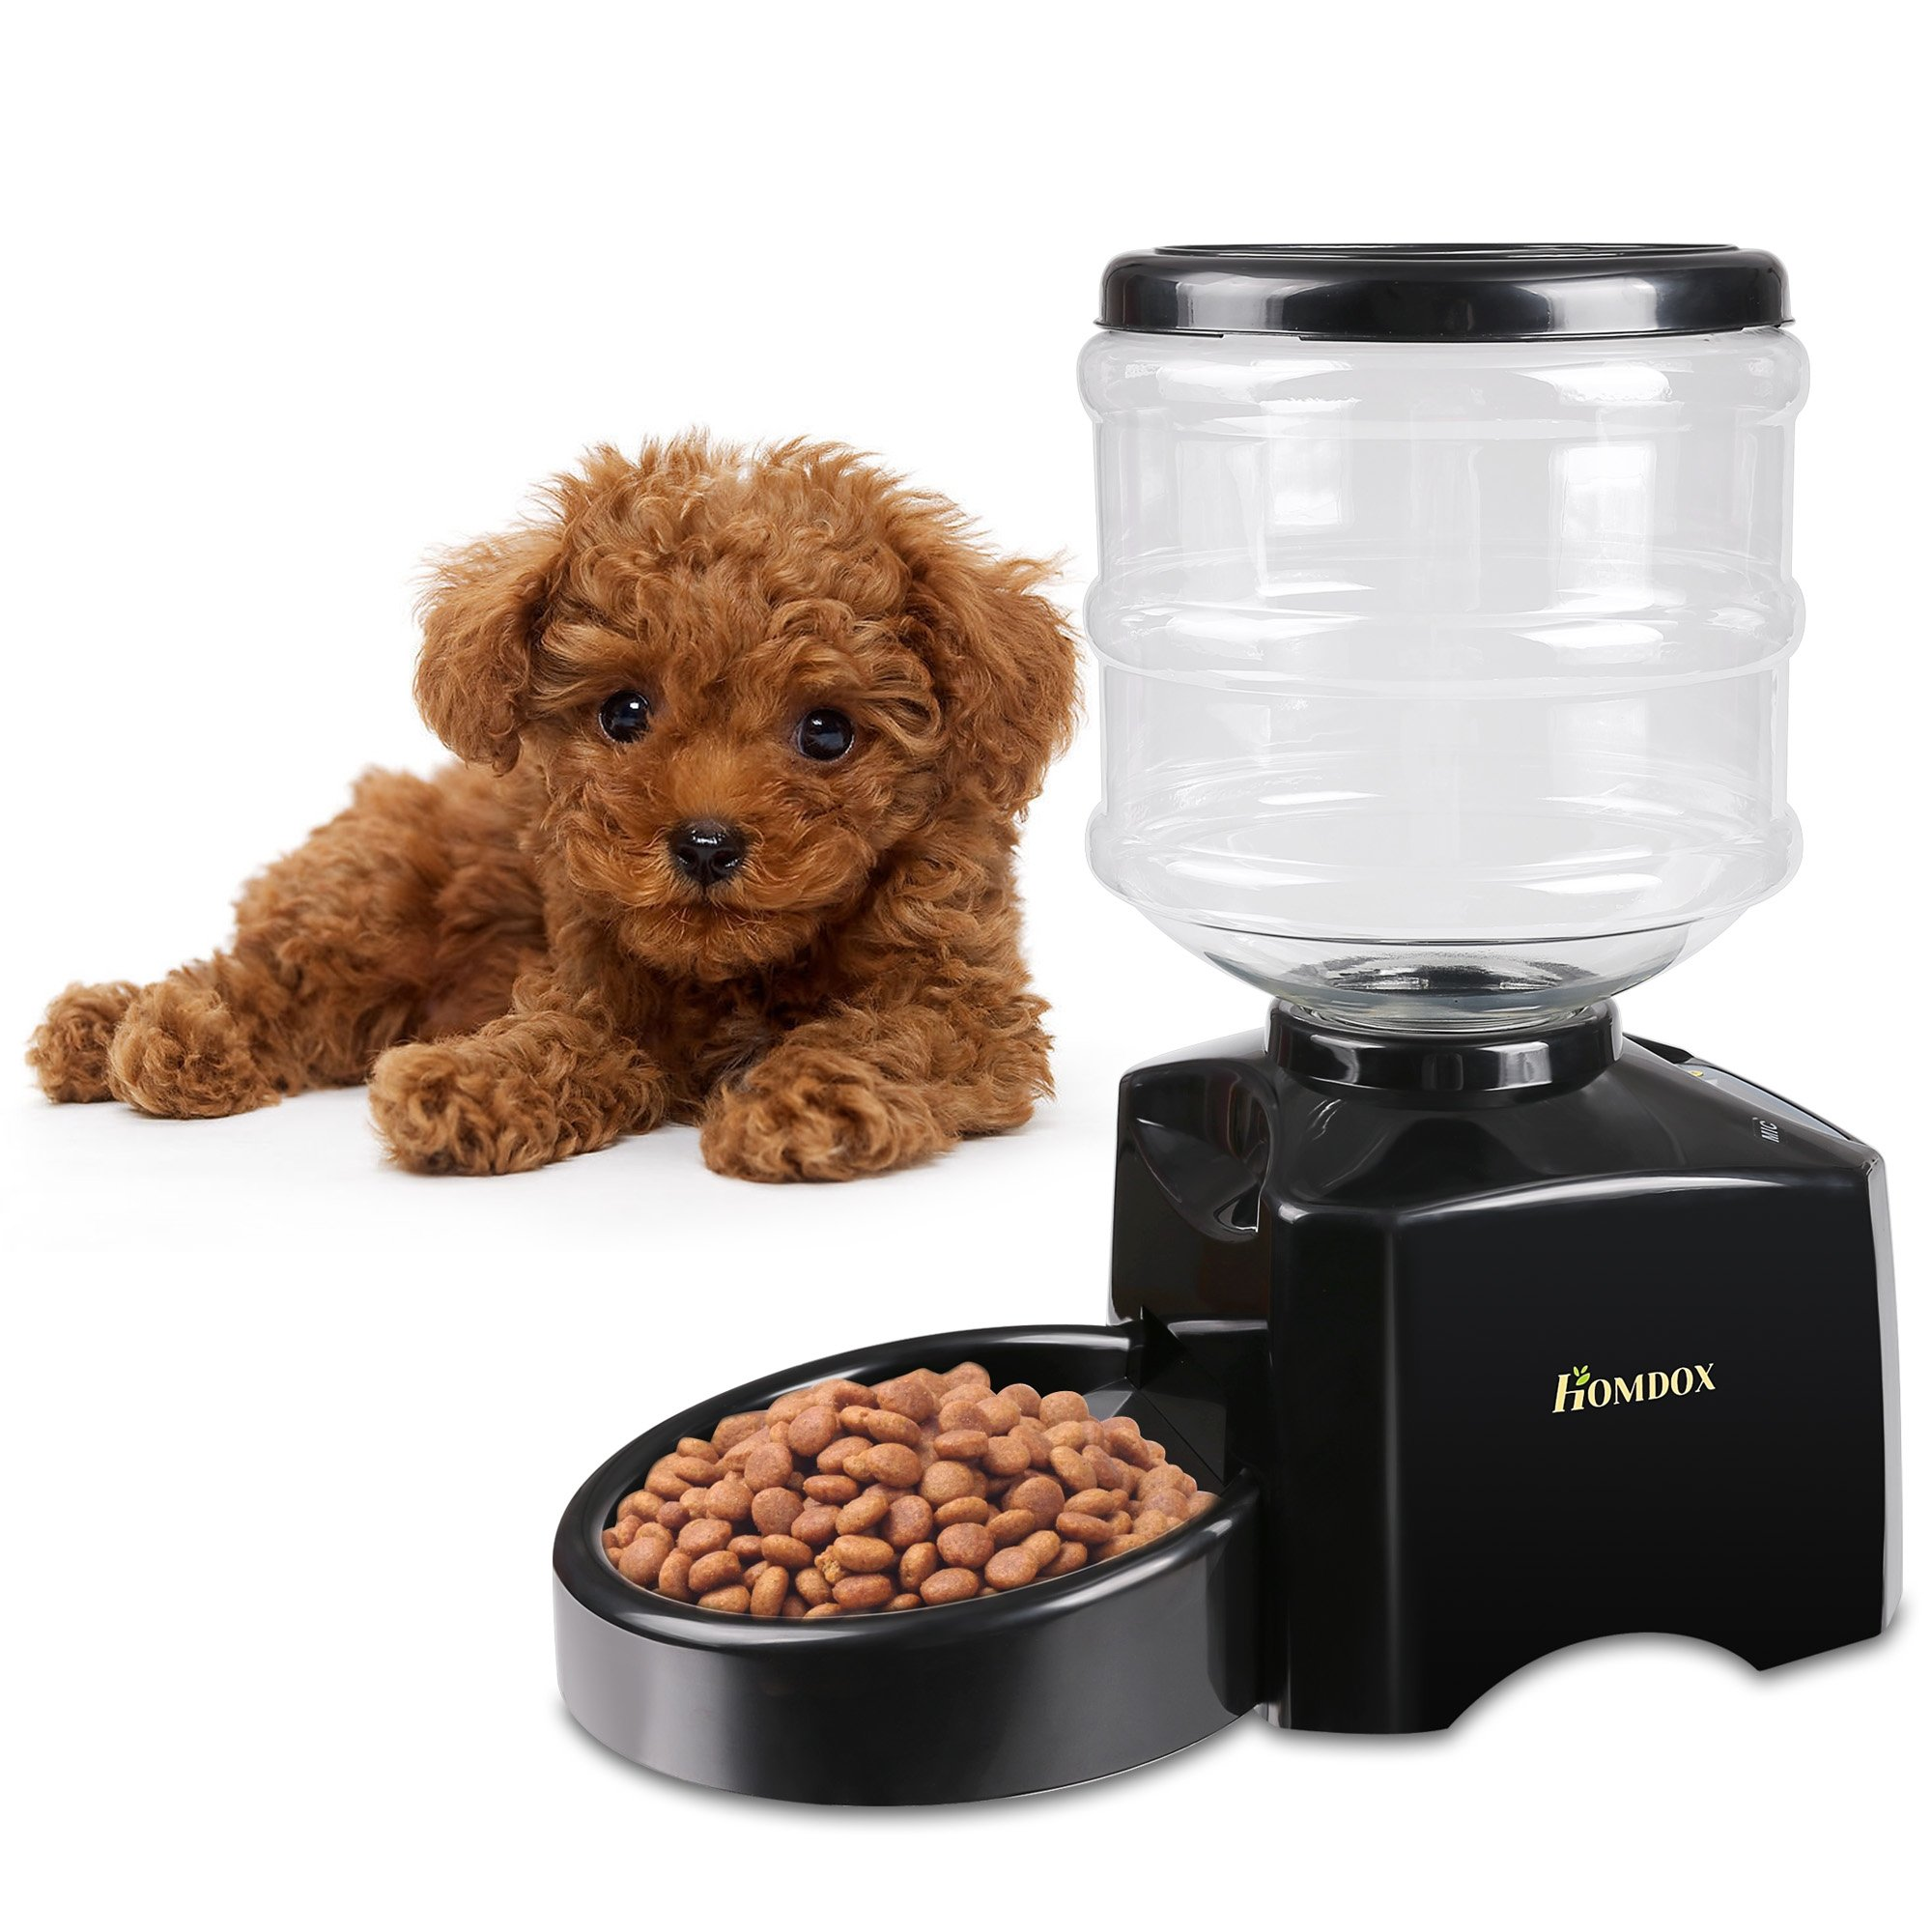 Jingjing1 Dog Cat Dry Food Automatic Pet Feeder with LED Display 5.5 Liter (US Stock) by Jingjing1 (Image #1)